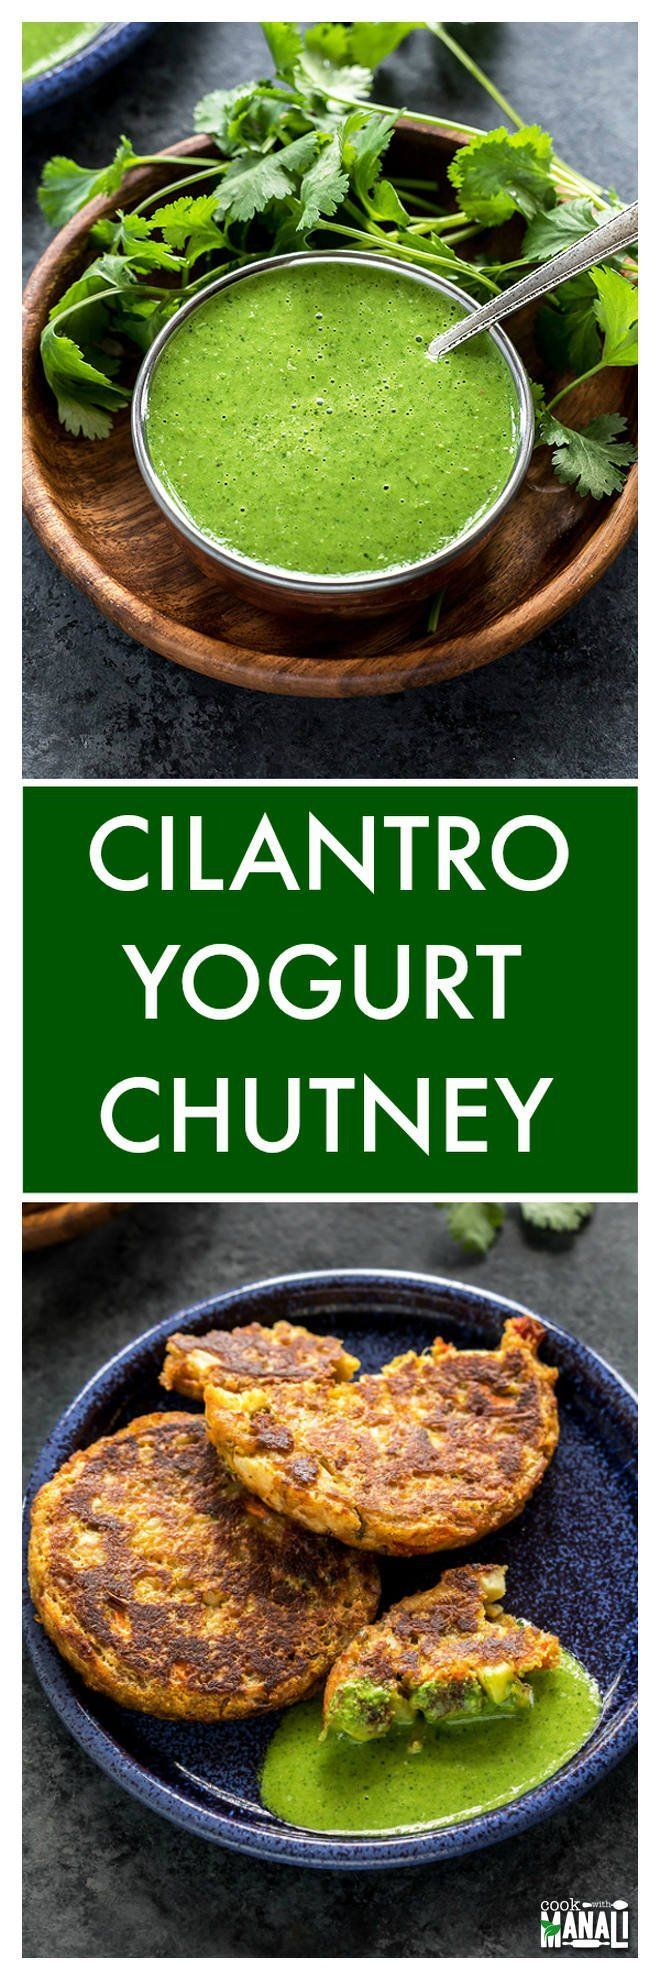 Easy Cilantro Yogurt Chutney is the perfect accompaniment to Indian meals! It's great on wraps, sandwiches and so much more!